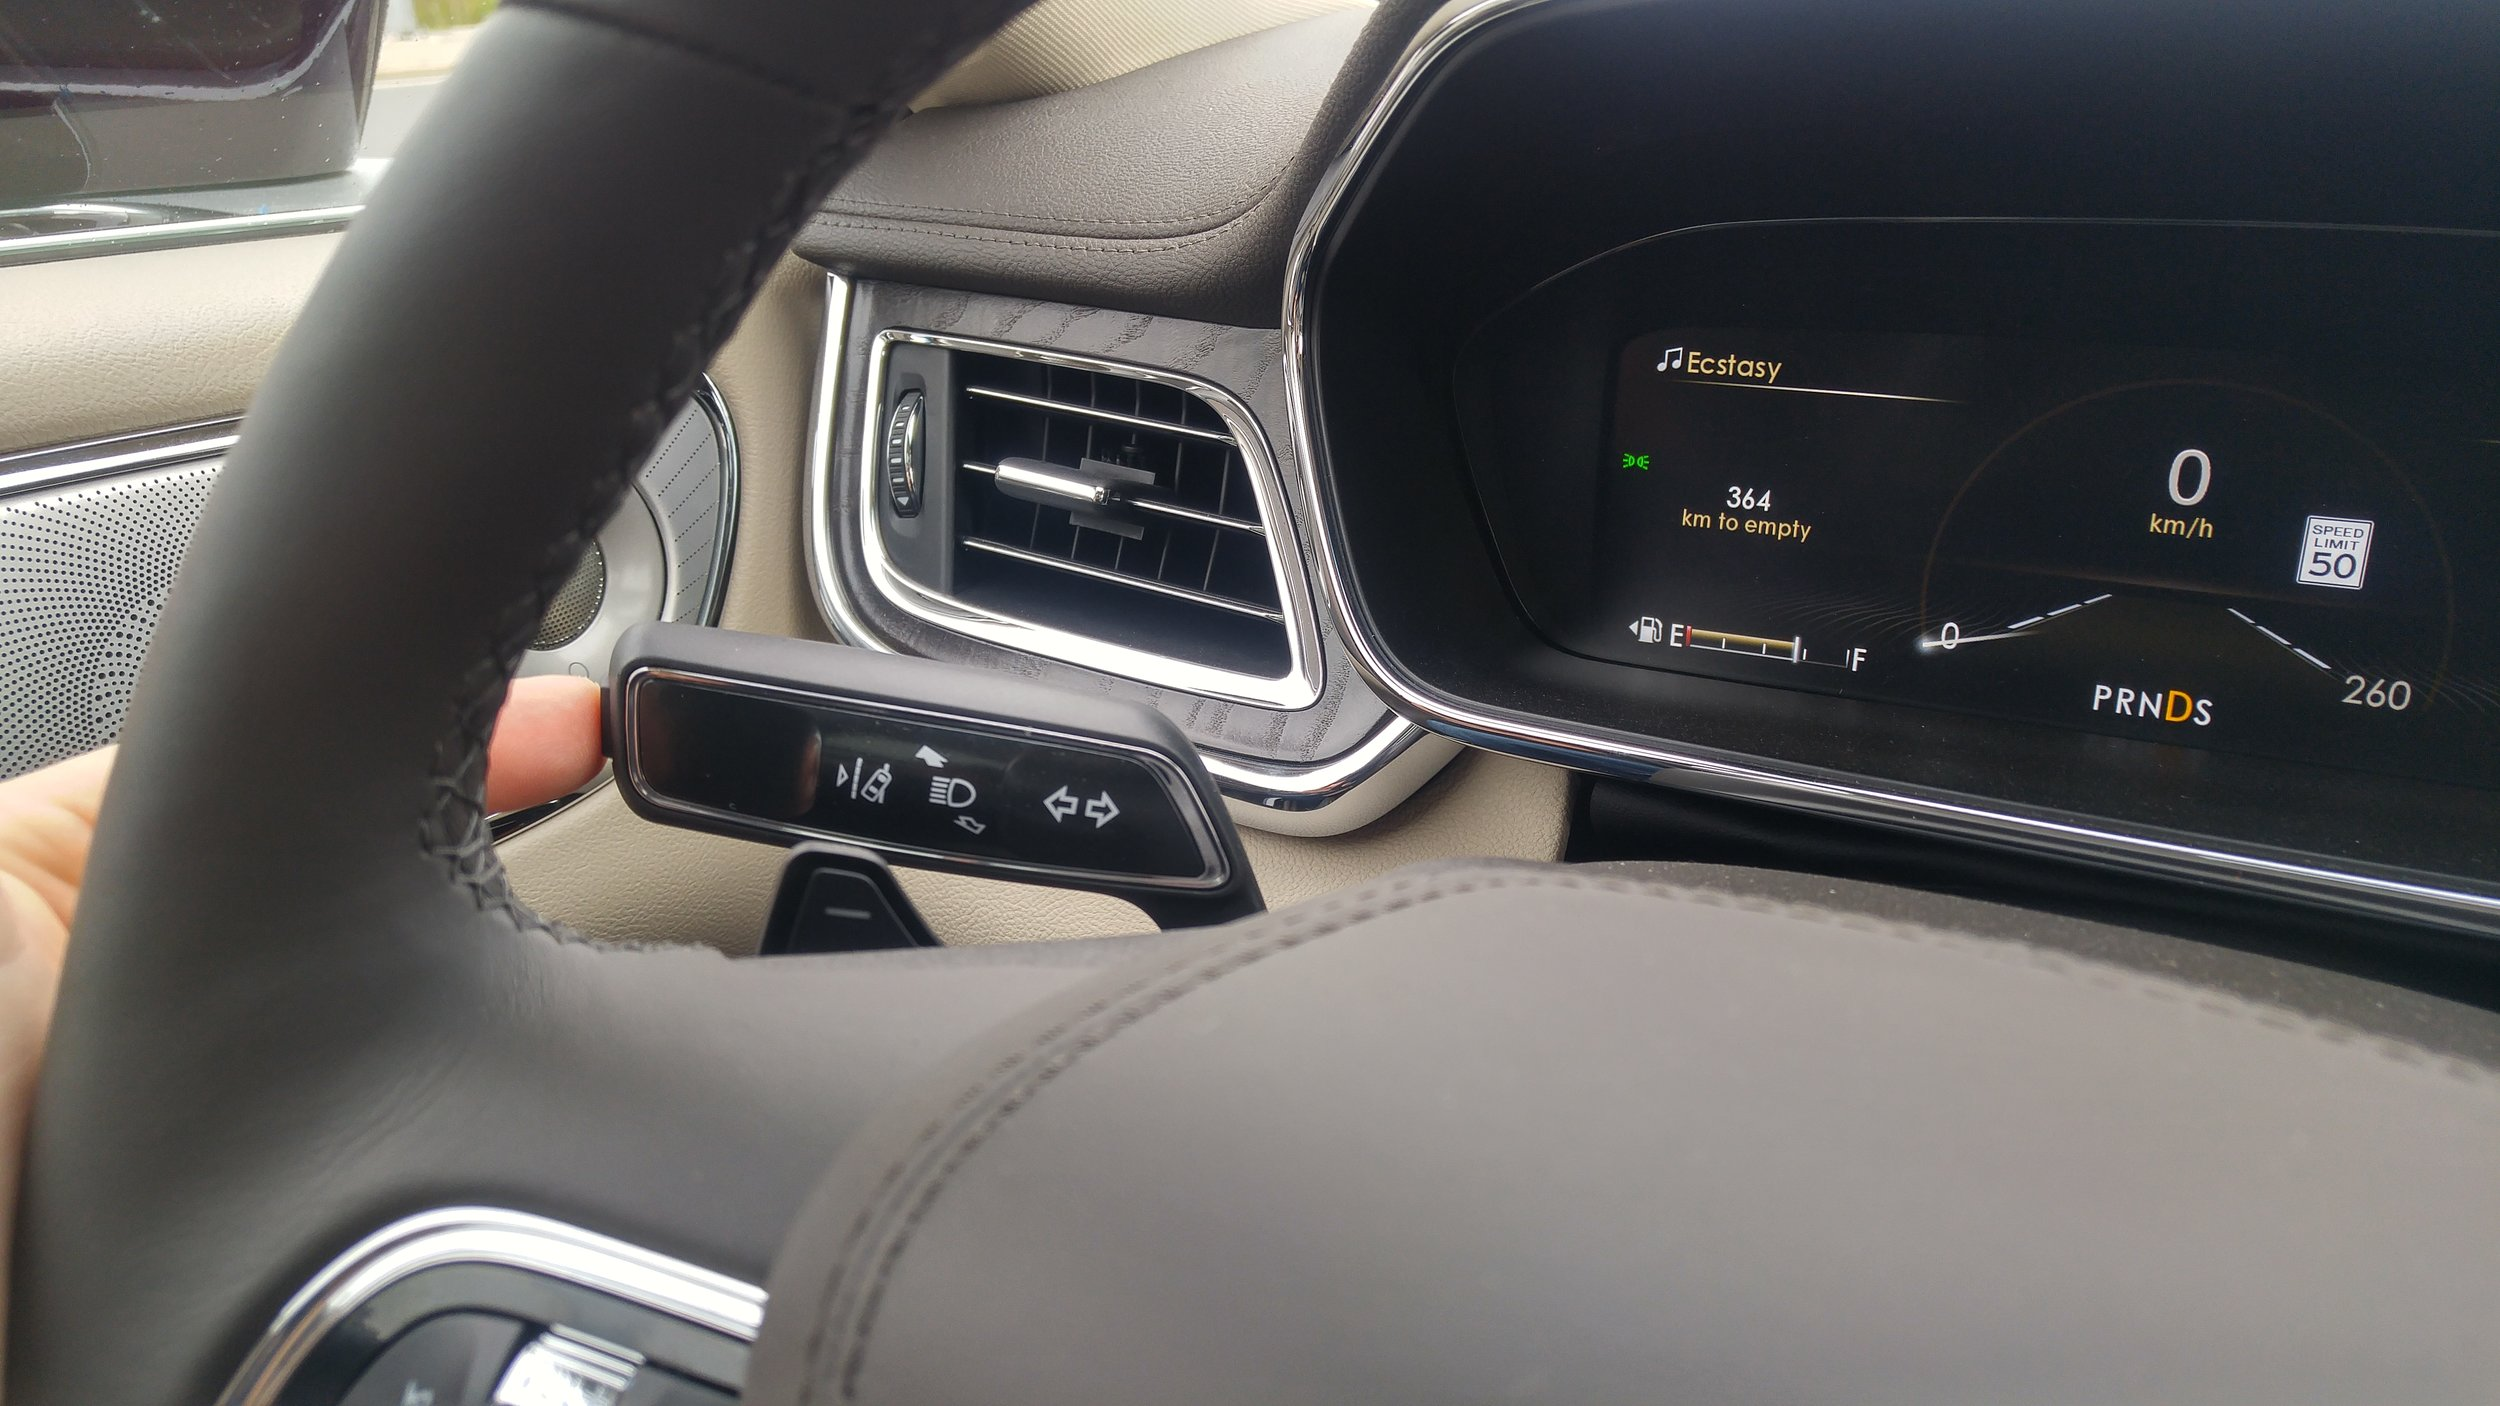 The Lane Departure Warning can be switched off easily if it becomes annoying on a narrow road. The full LCD instrument display can be adjusted to display a variety of info, depending on your preferences.